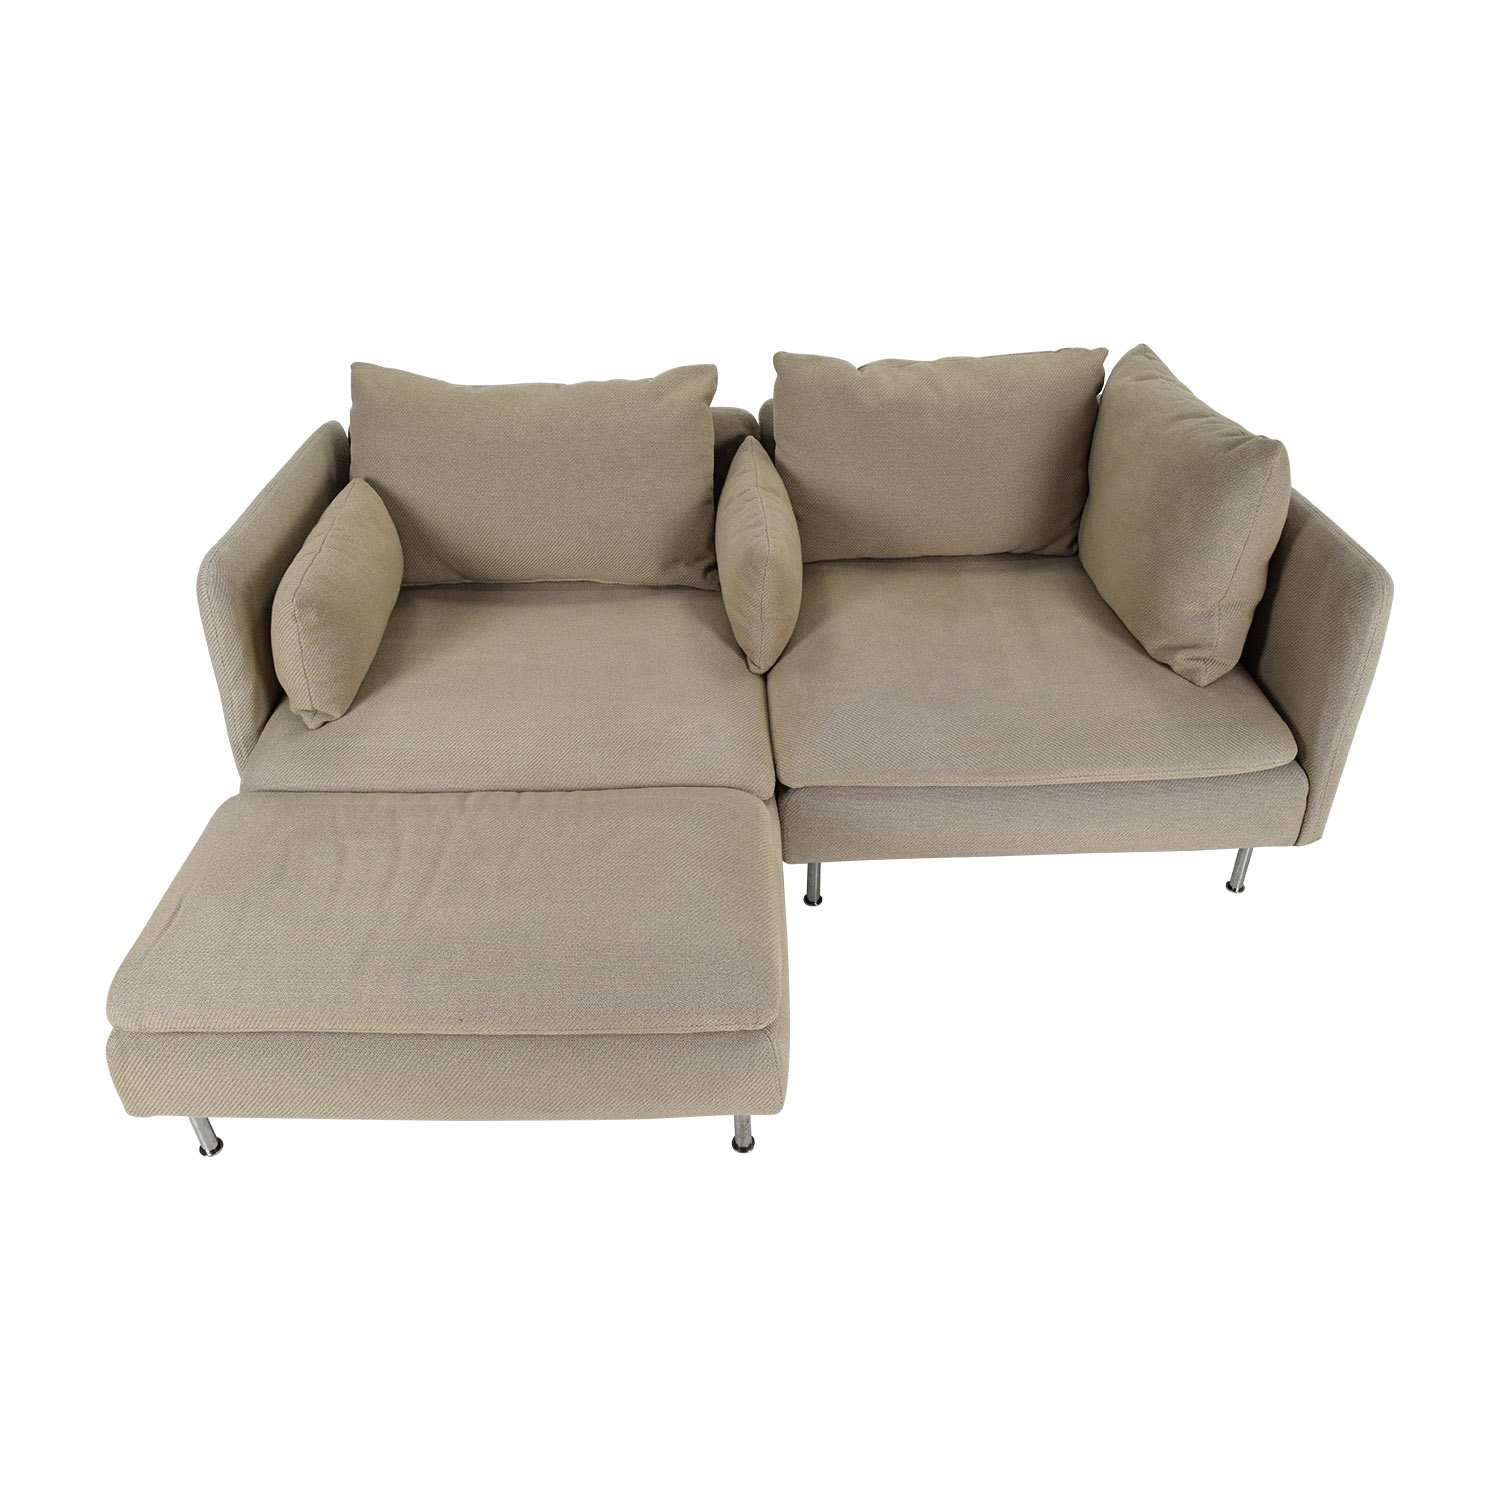 IKEA Soderhamn Sectional Sofa